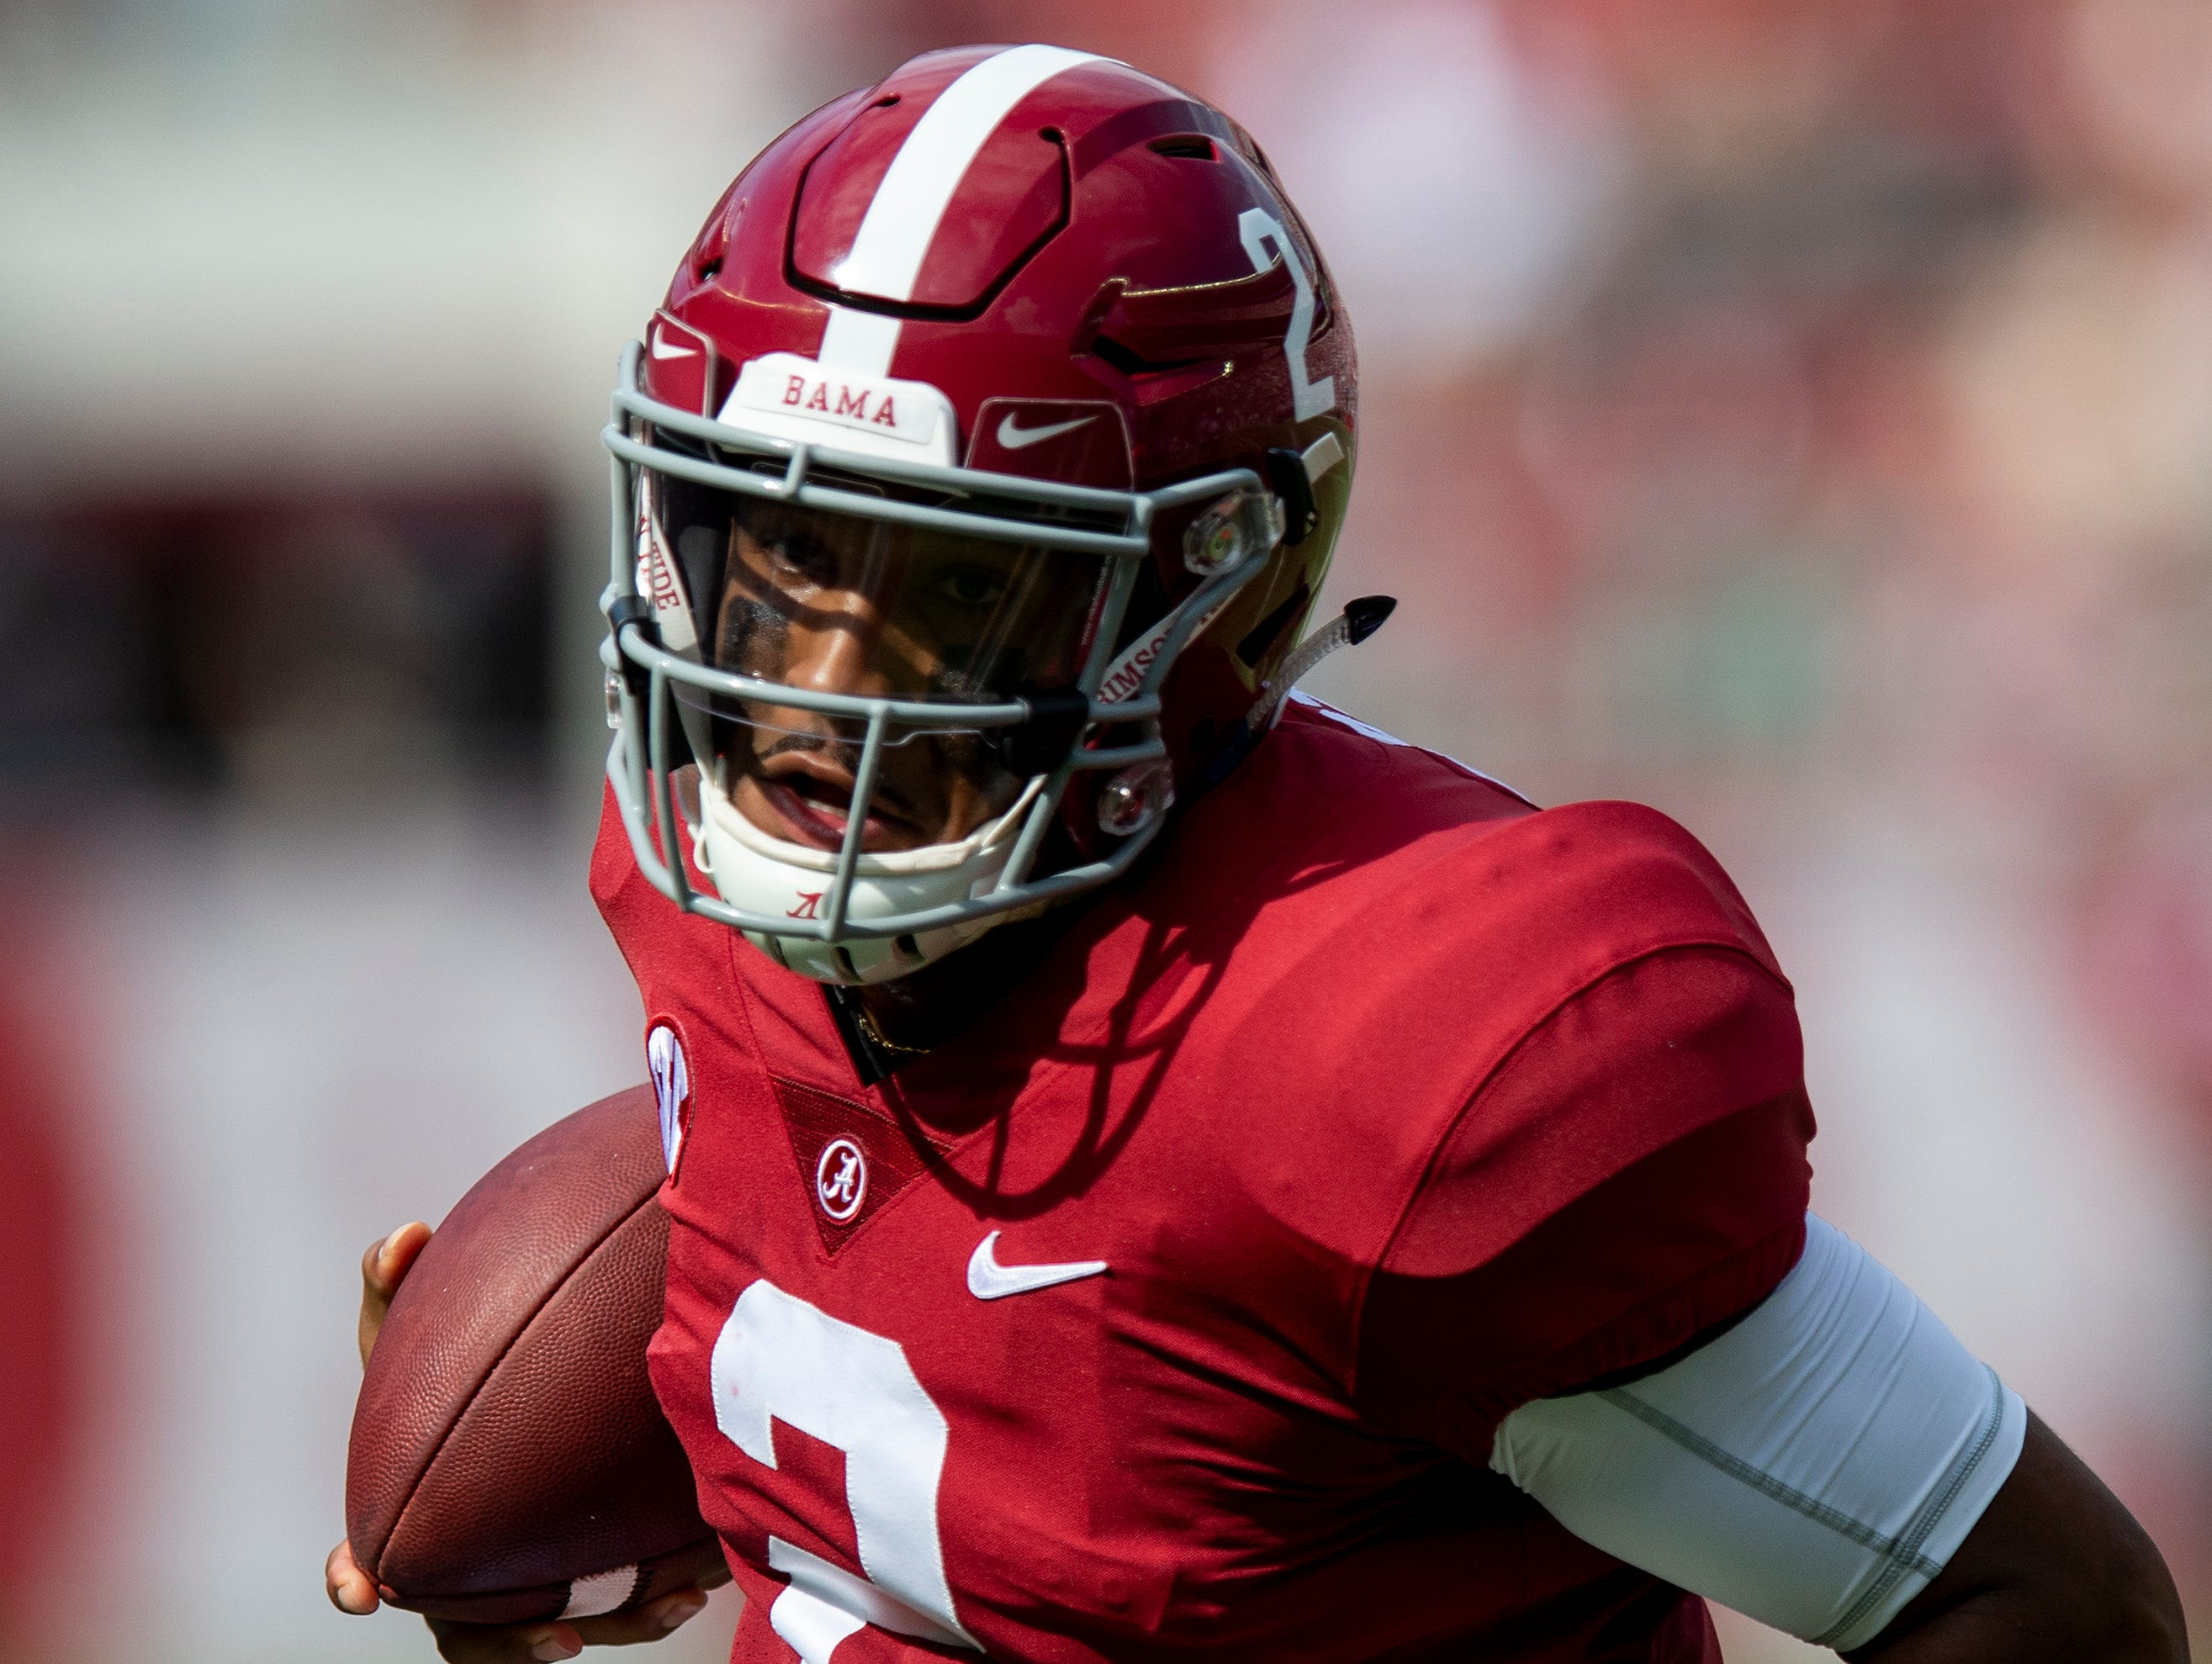 Alabama quarterback Jalen Hurts (2) carries the ball in first half action against Arkansas State at Bryant Denny Stadium in Tuscaloosa, Ala., on Saturday September 8, 2018.